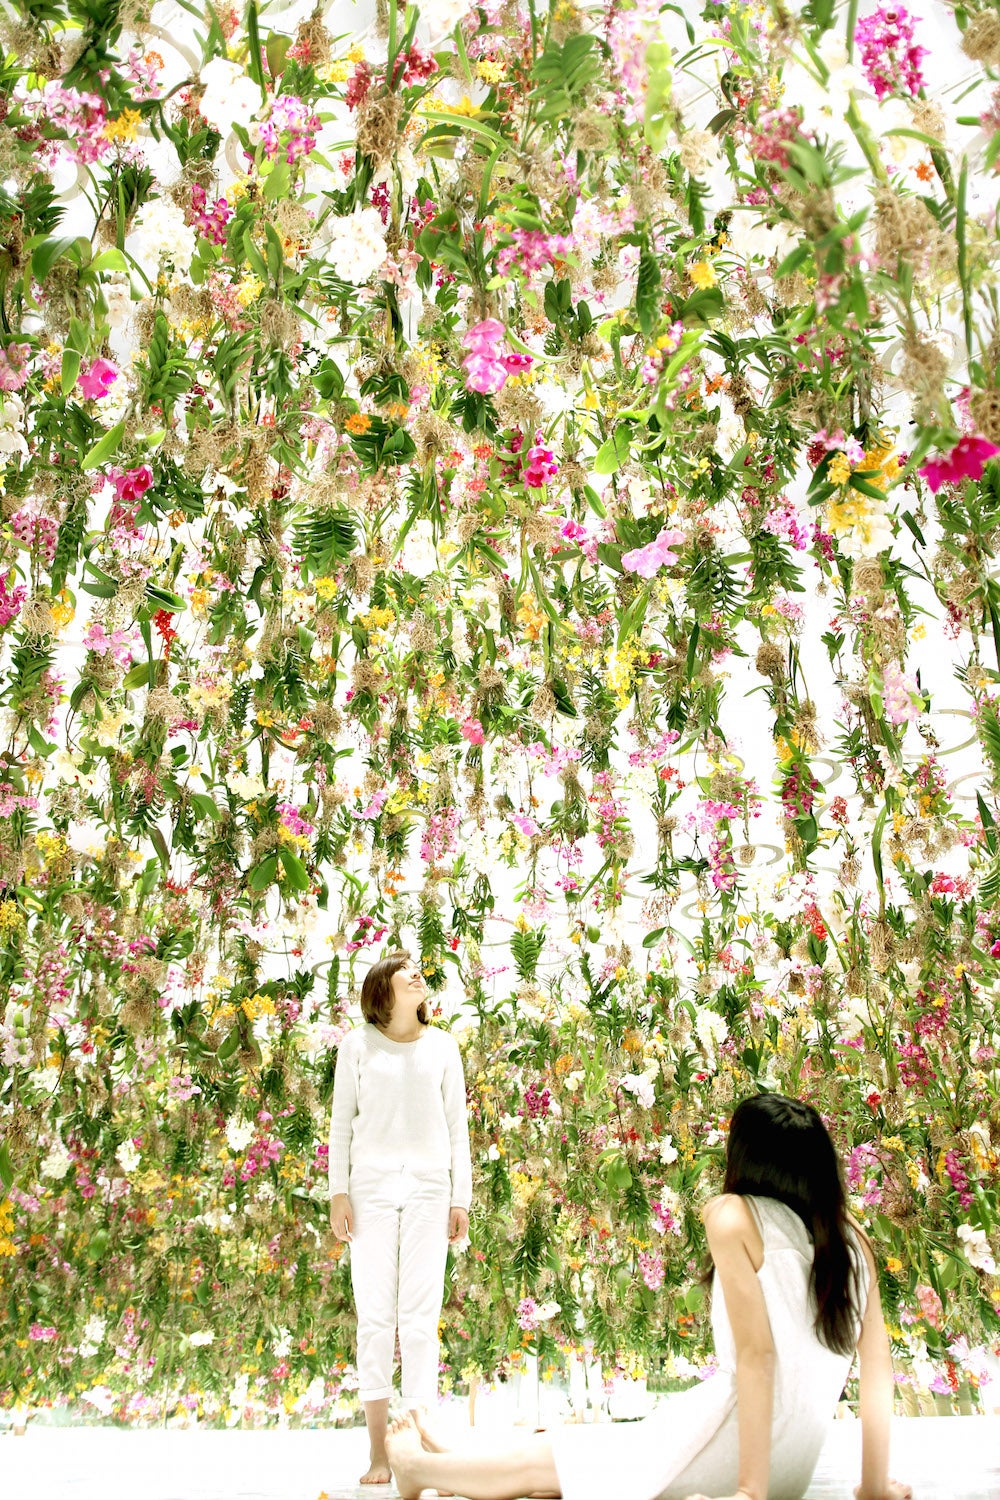 This floating flower garden is like a magical dreamland forest